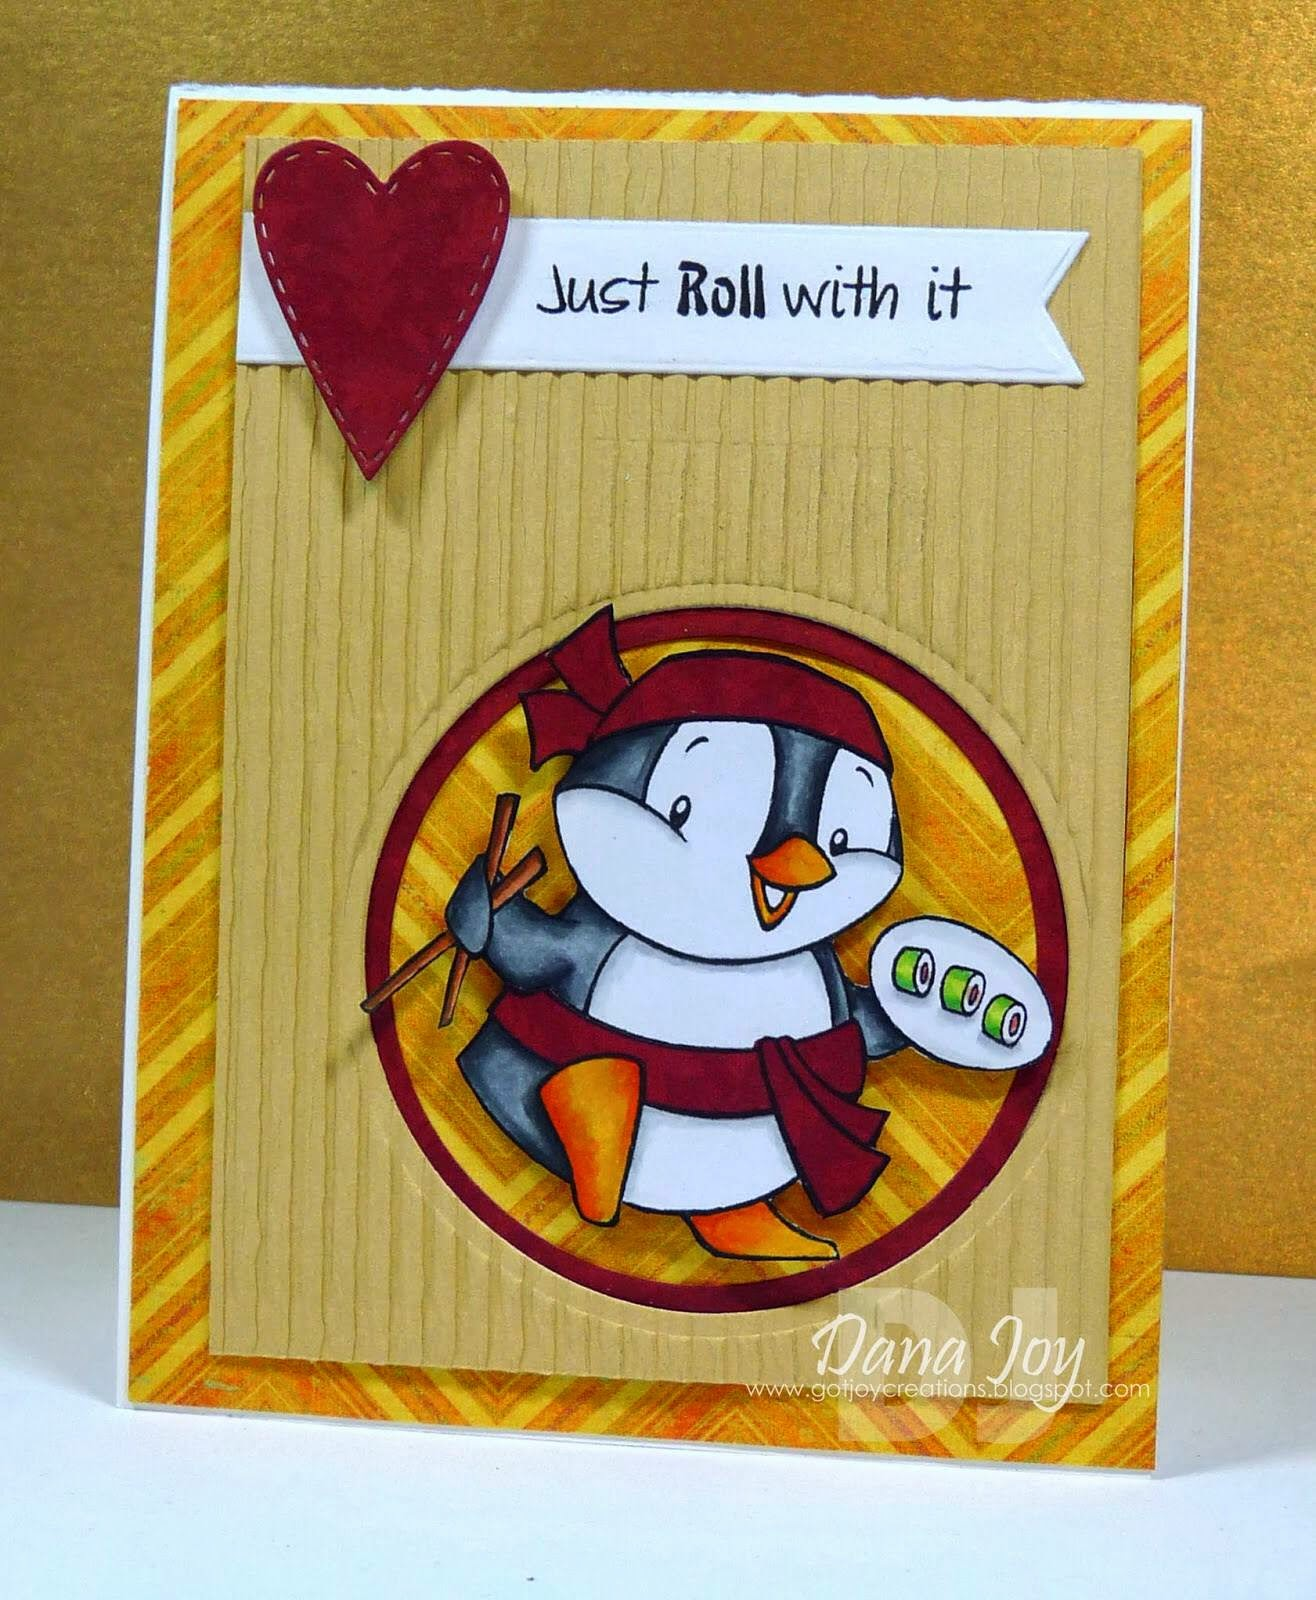 http://gotjoycreations.blogspot.com/2014/03/just-roll-with-it.html